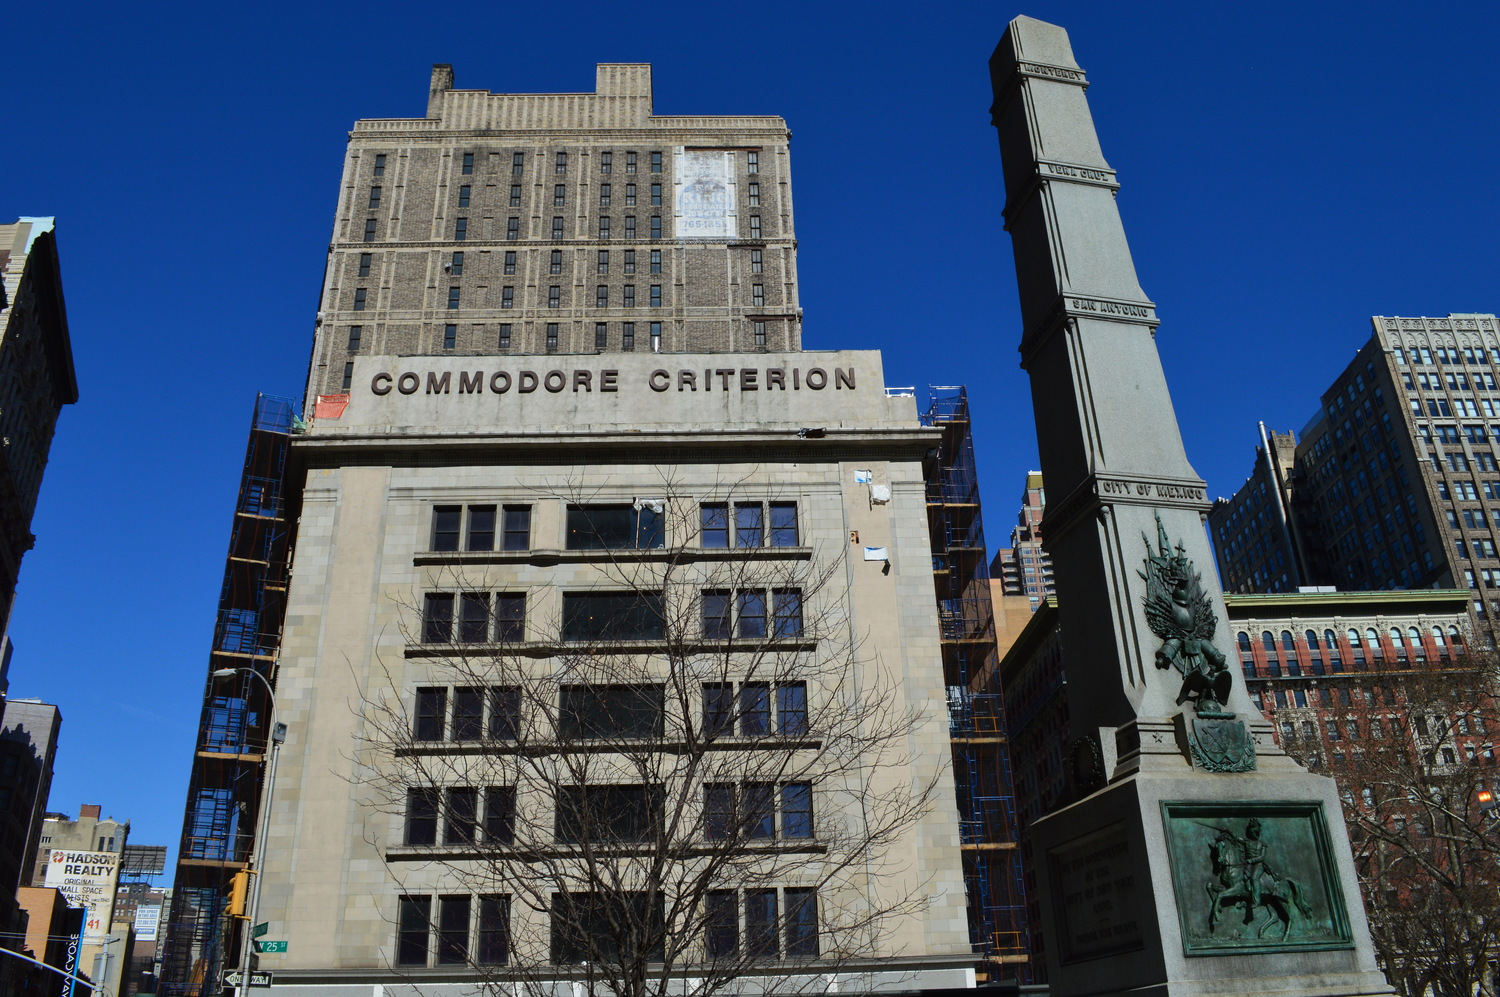 The Commodore Criterion Building and William J. Worth Memorial